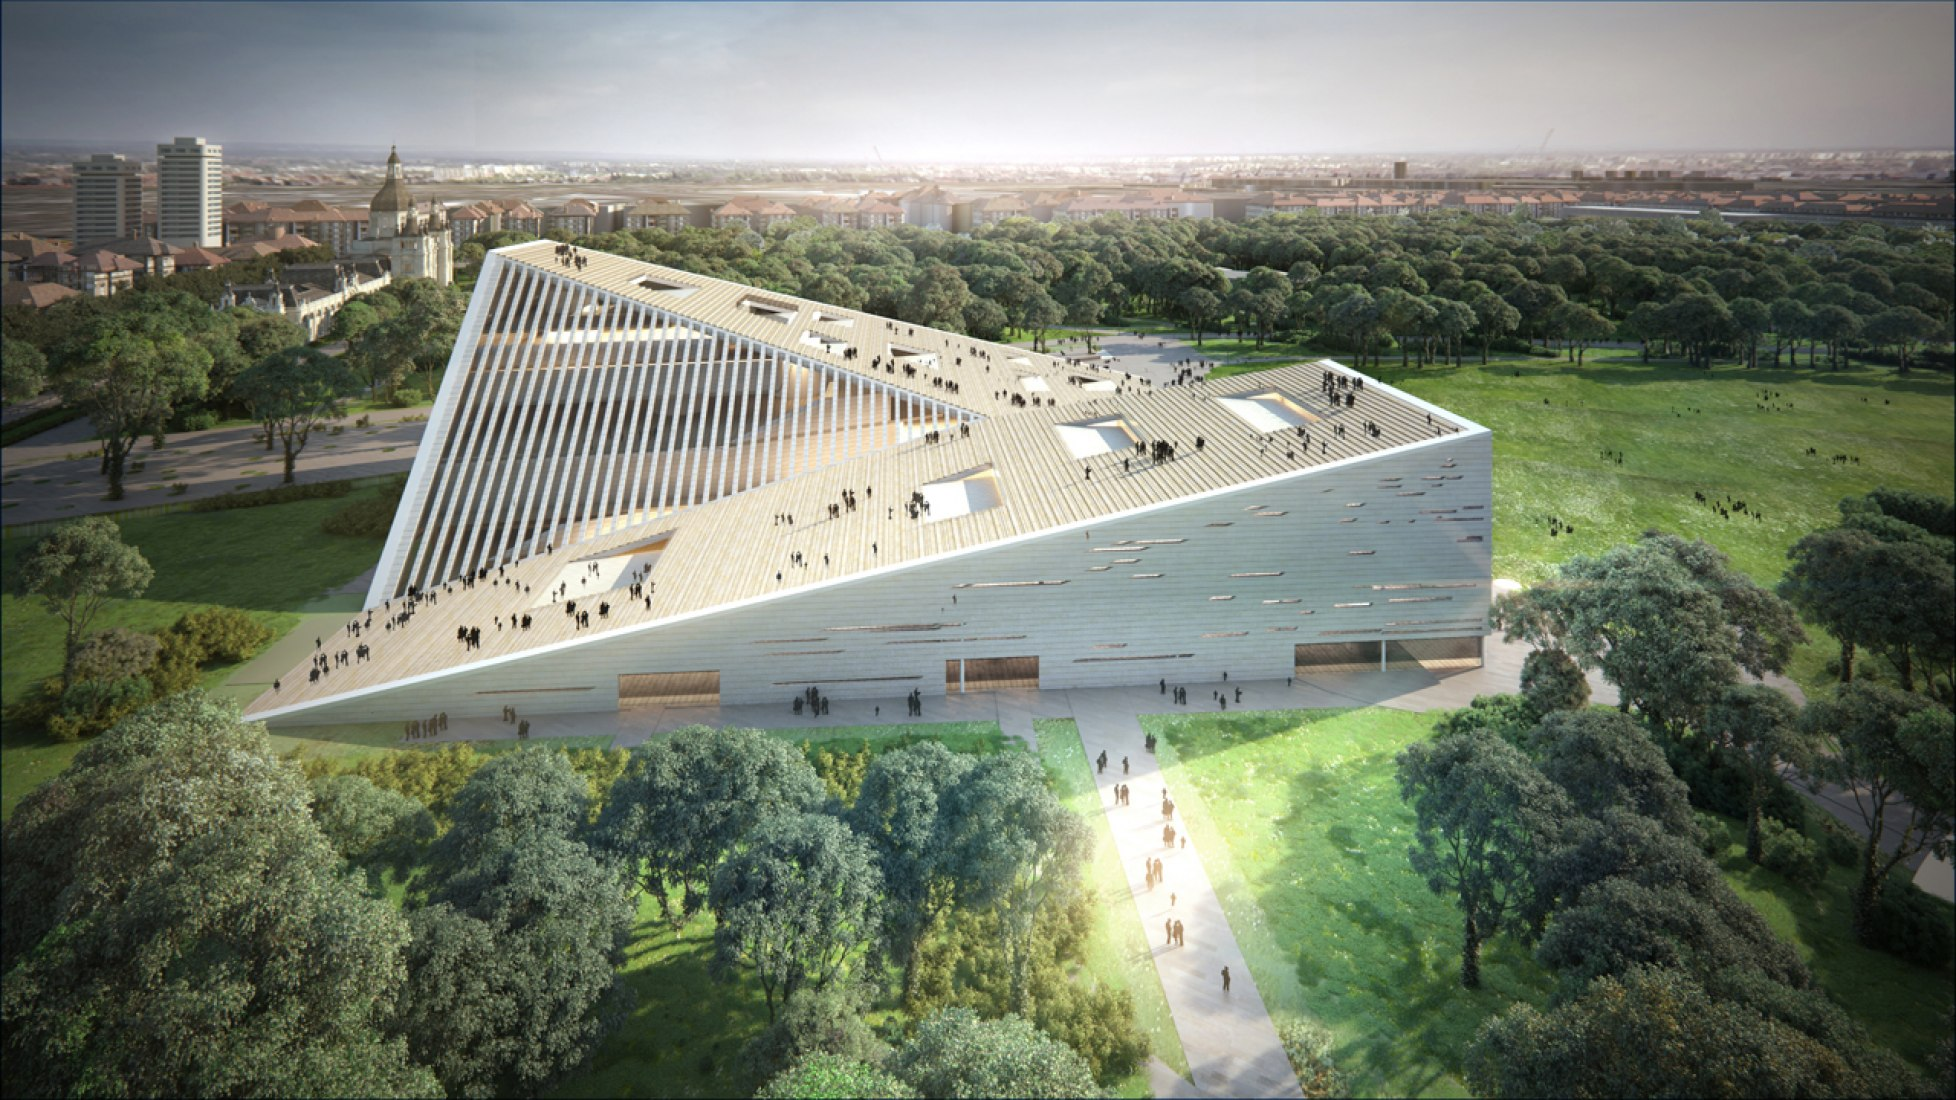 Aerial view. Snøhetta proposal for the New National Gallery/Ludwig Museum. Image courtesy of Liget Budapest Design Competition.